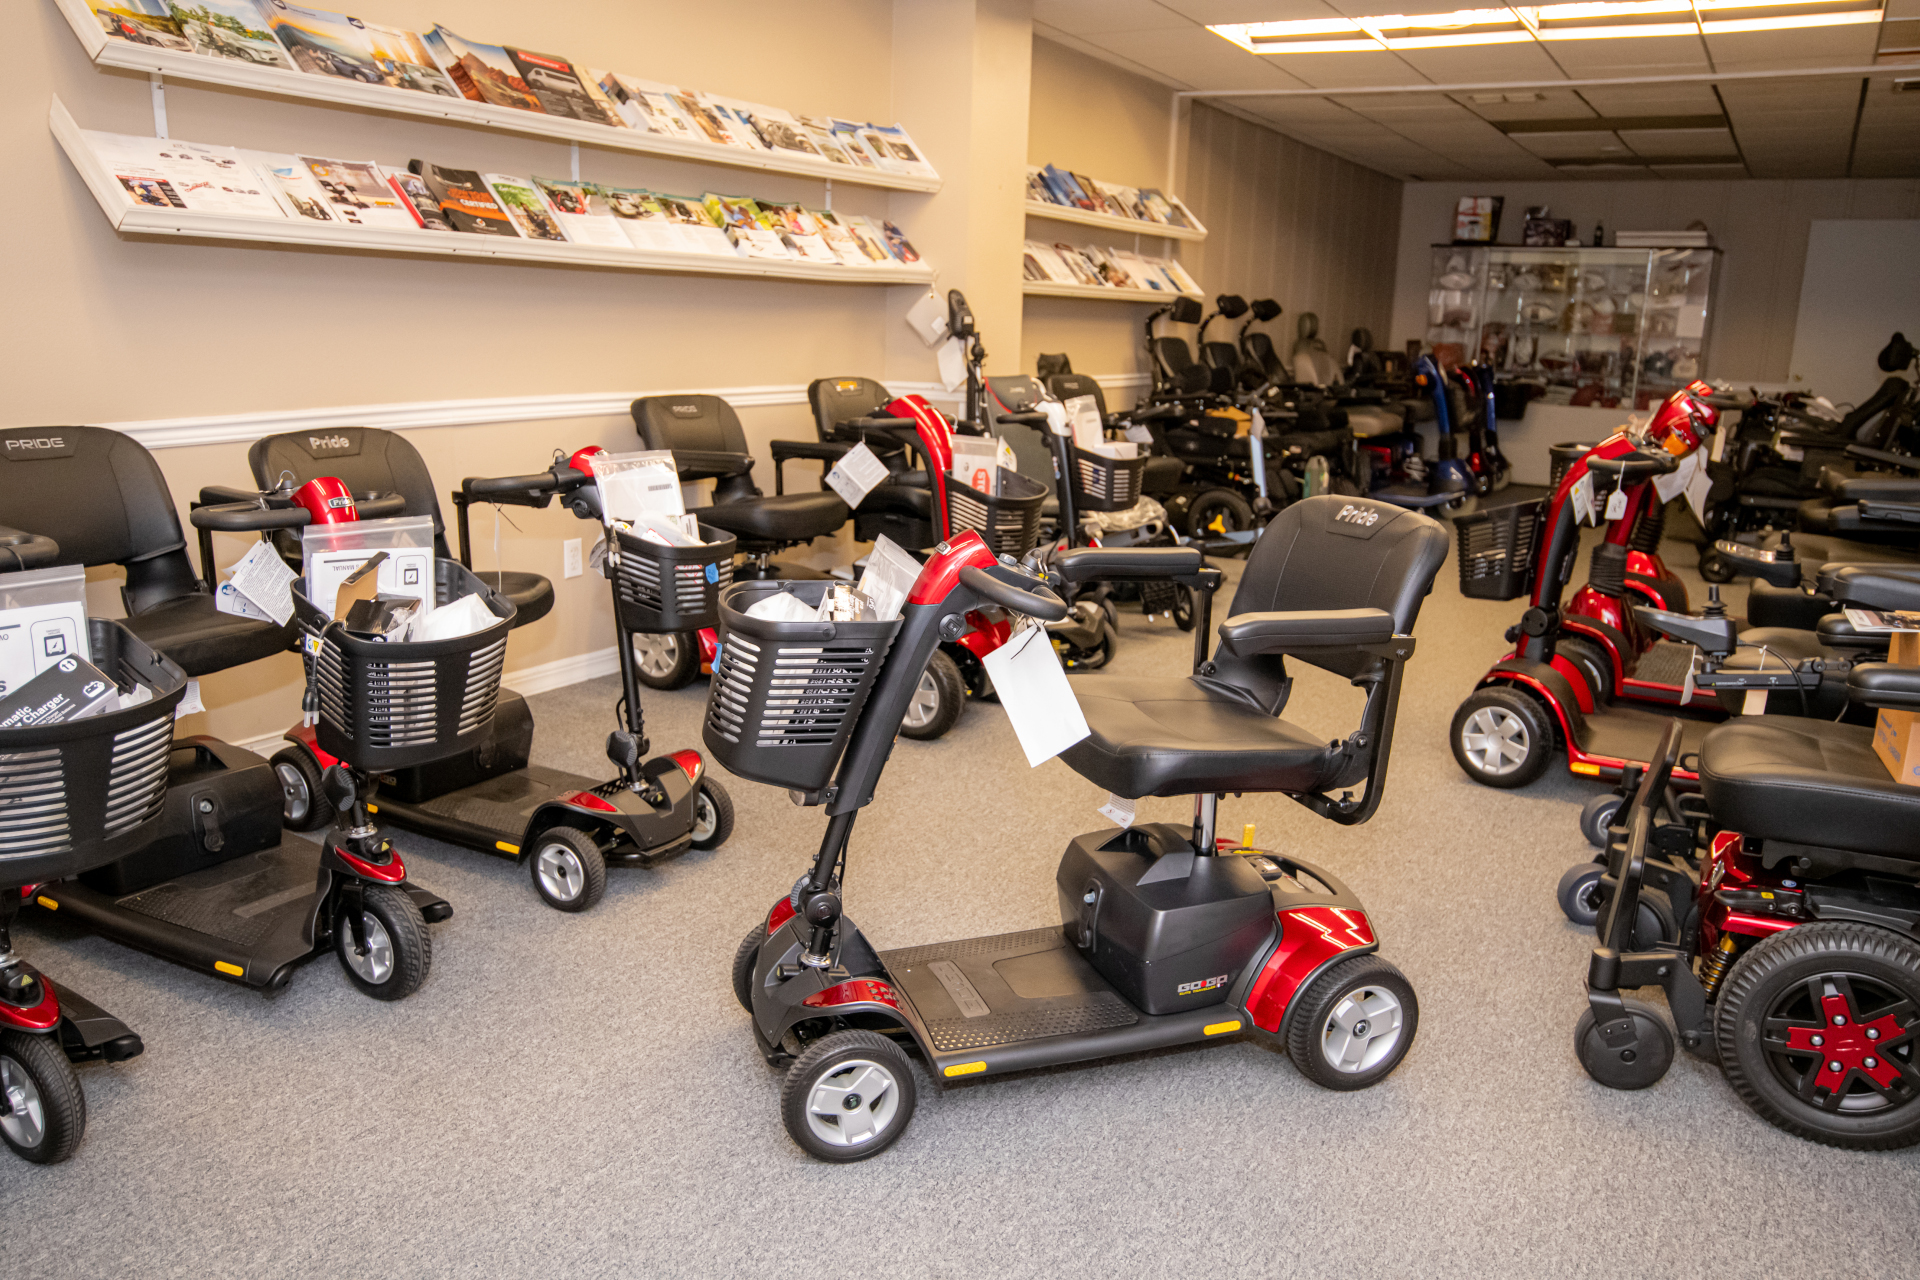 Mobility Scooters: A display floor filled with various designs and types of mobility scooters and power chairs